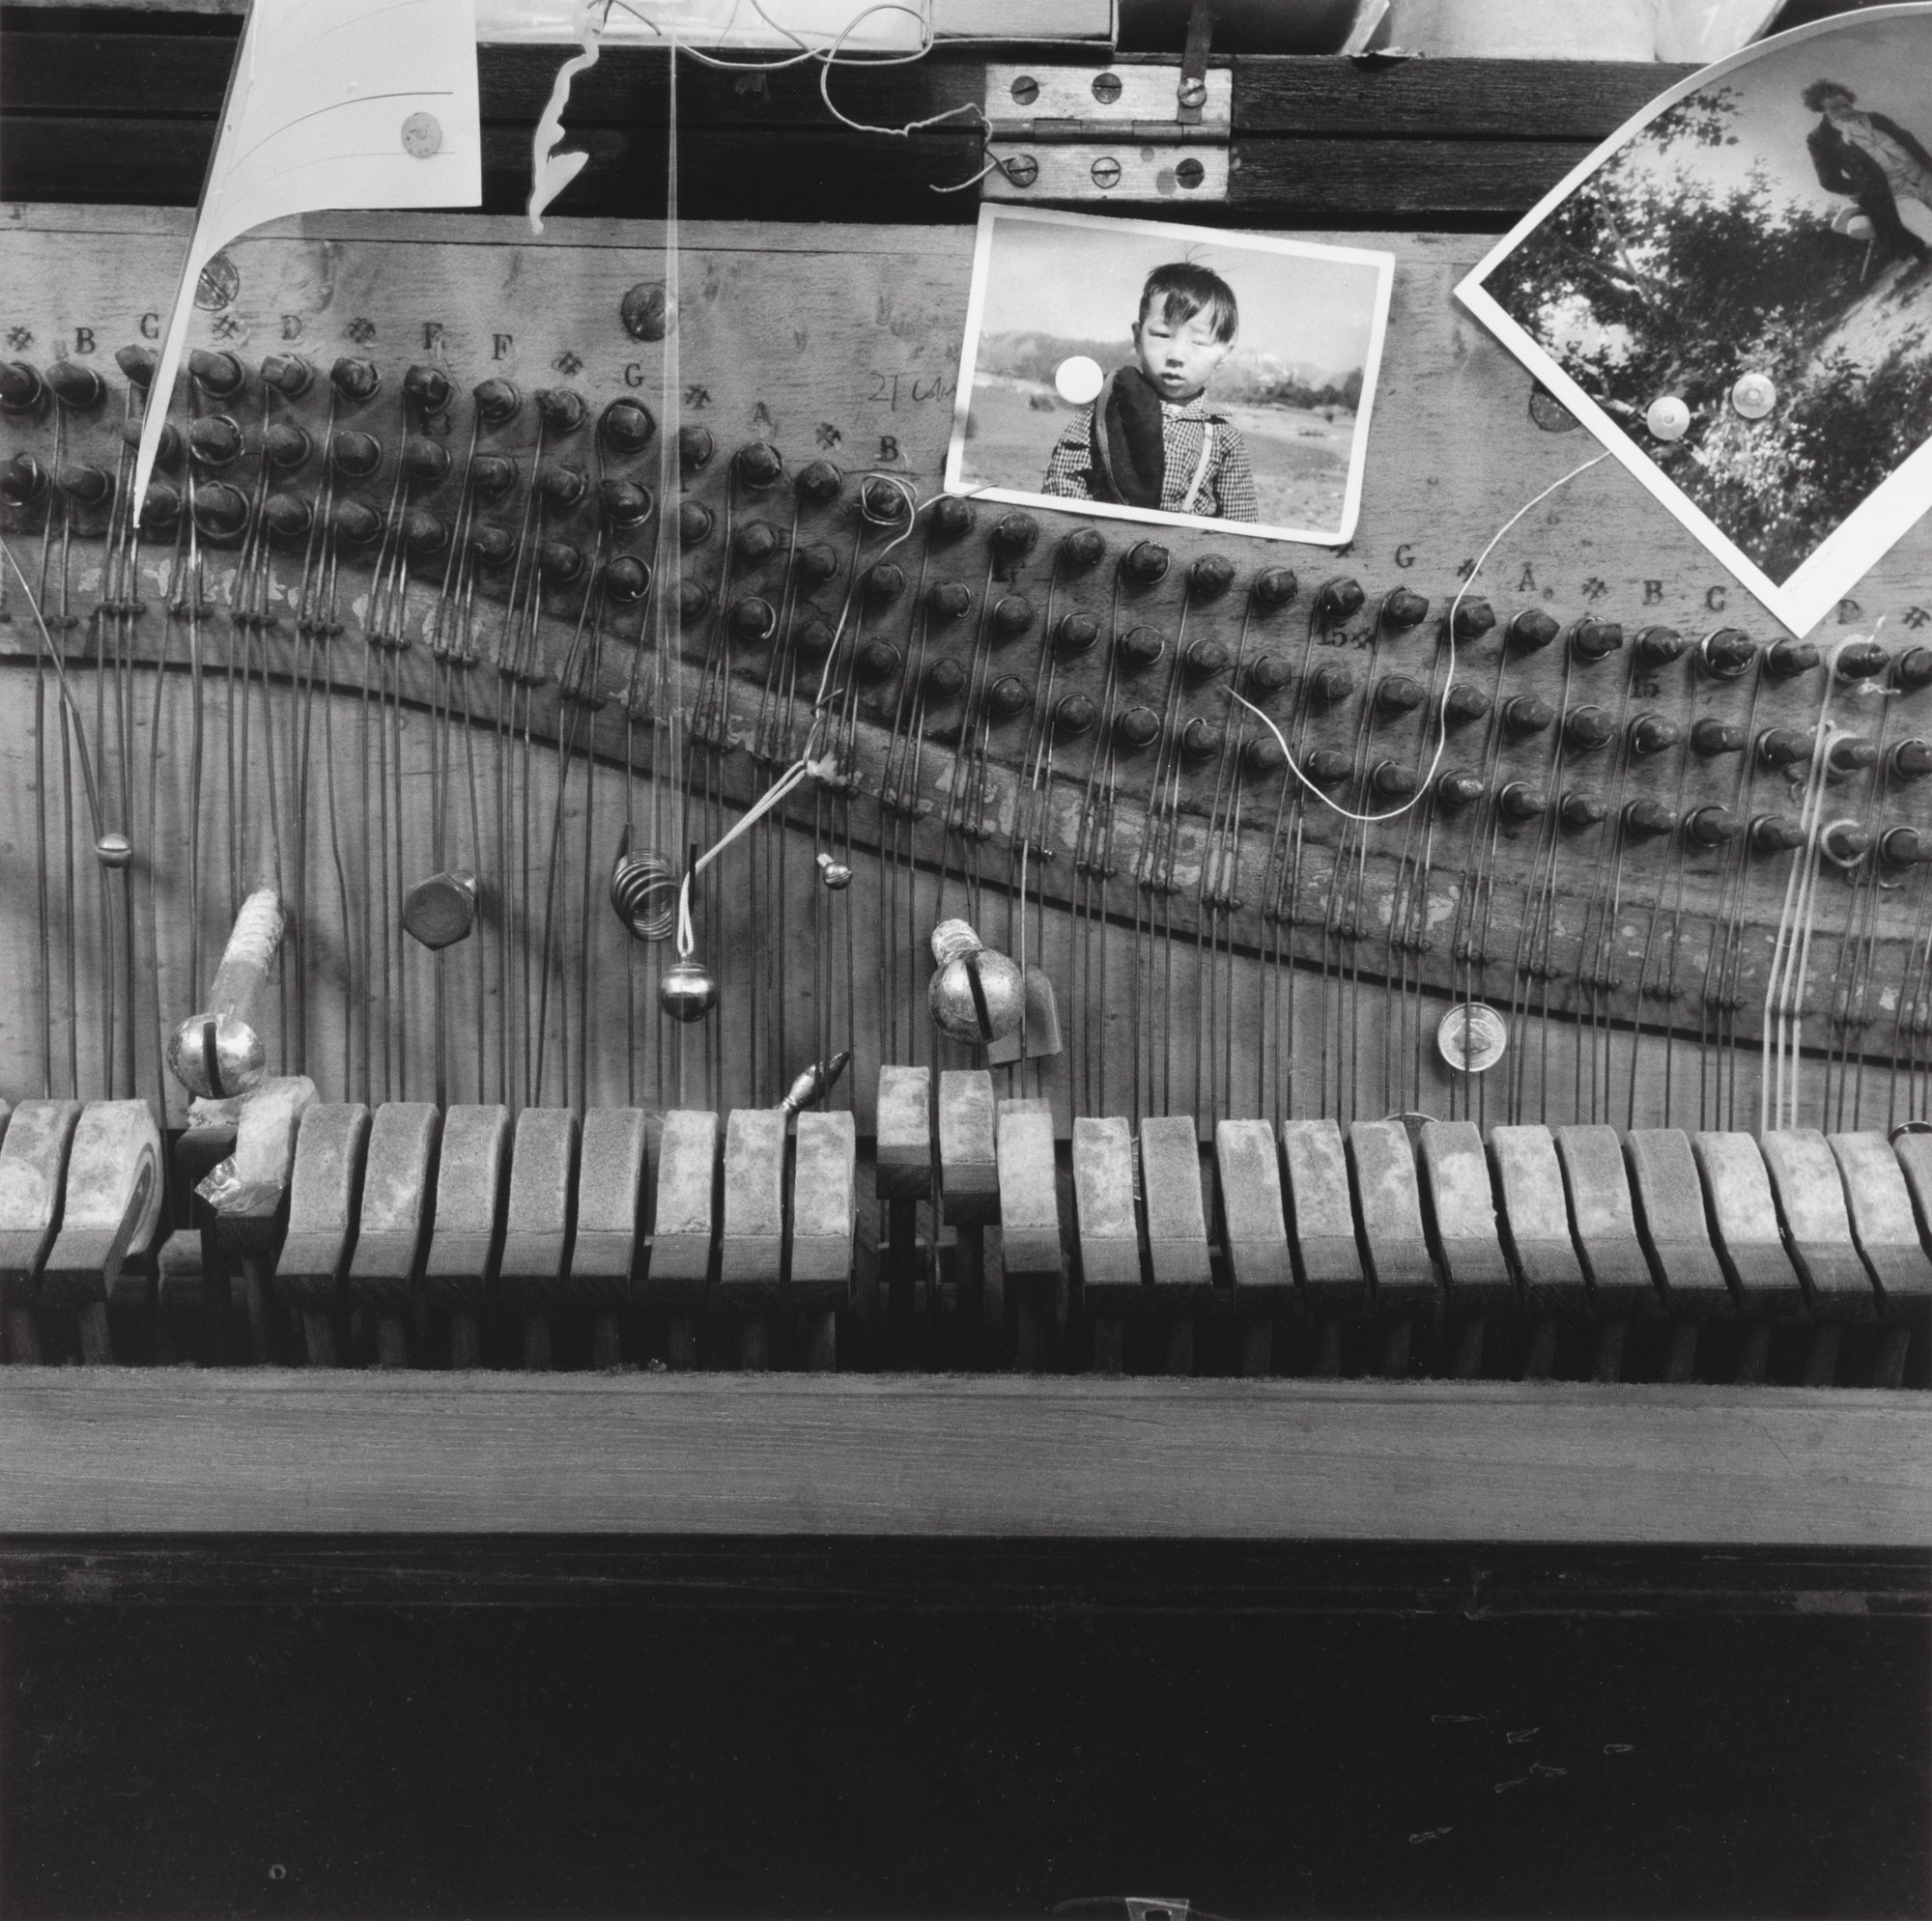 Nam June Paik. Nam June Paik's prepared piano at his Exposition of Music – Electronic Television, Galerie Parnass, Wuppertal, March 11-20, 1963. 1963